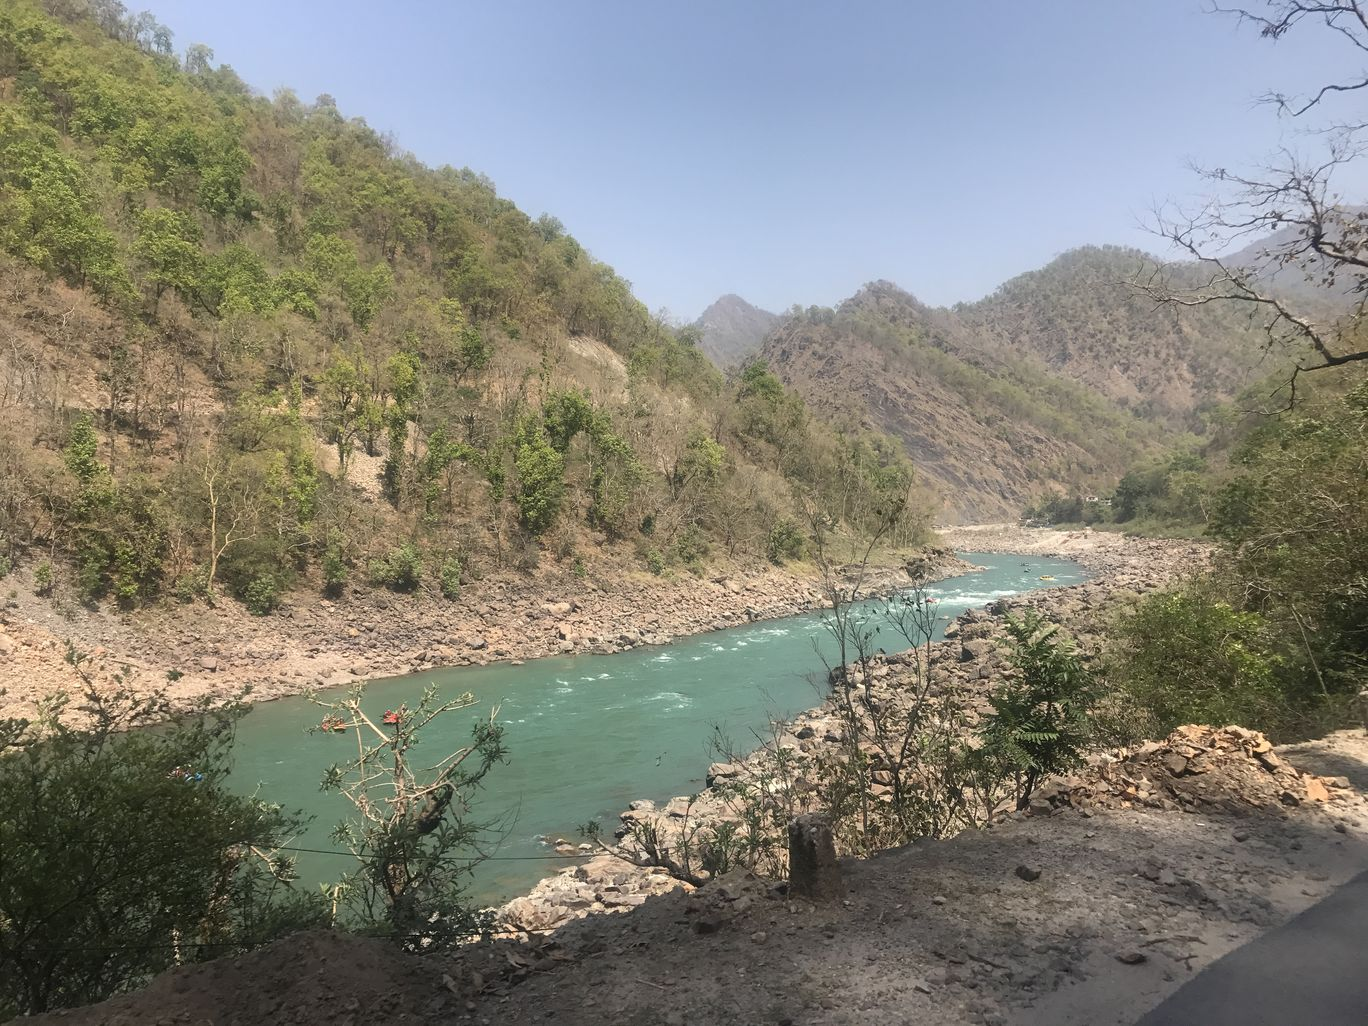 Photo of Rishikesh River Rafting & Camping By Vivek Chachra